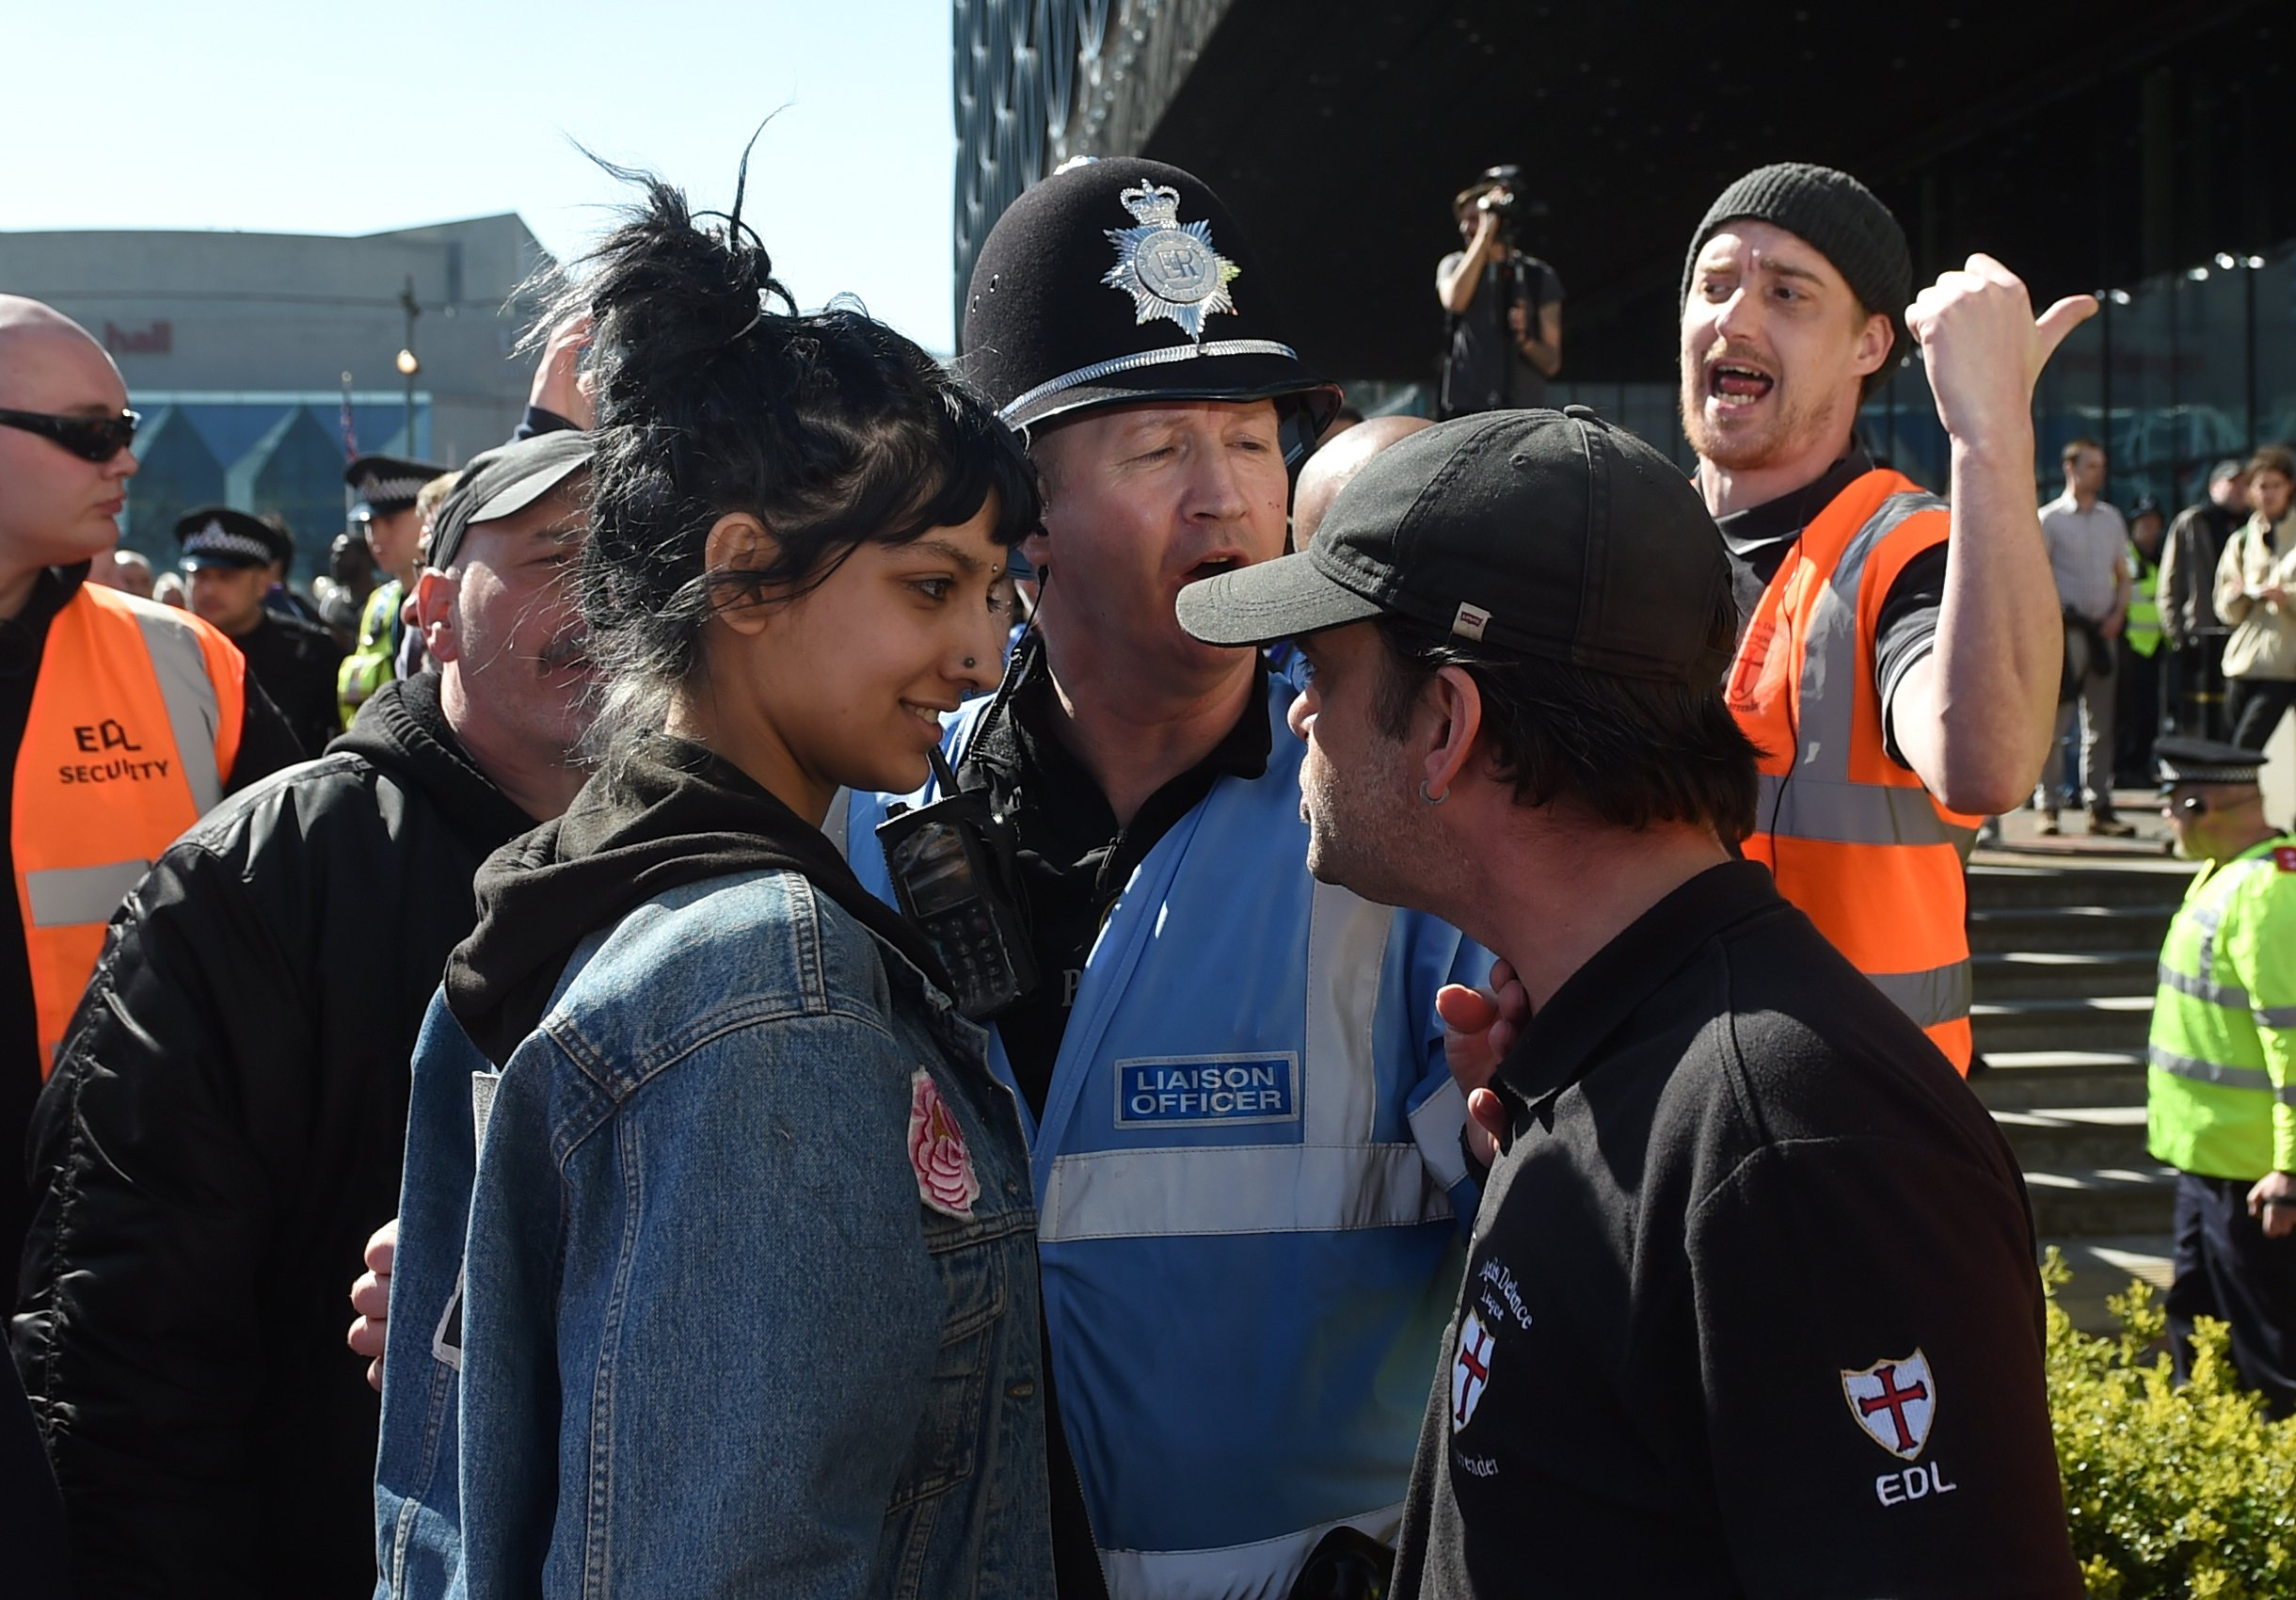 Saffiyah Khan calmly smiles in the face of bigotry in 2017.  Image credit: independent.co.uk